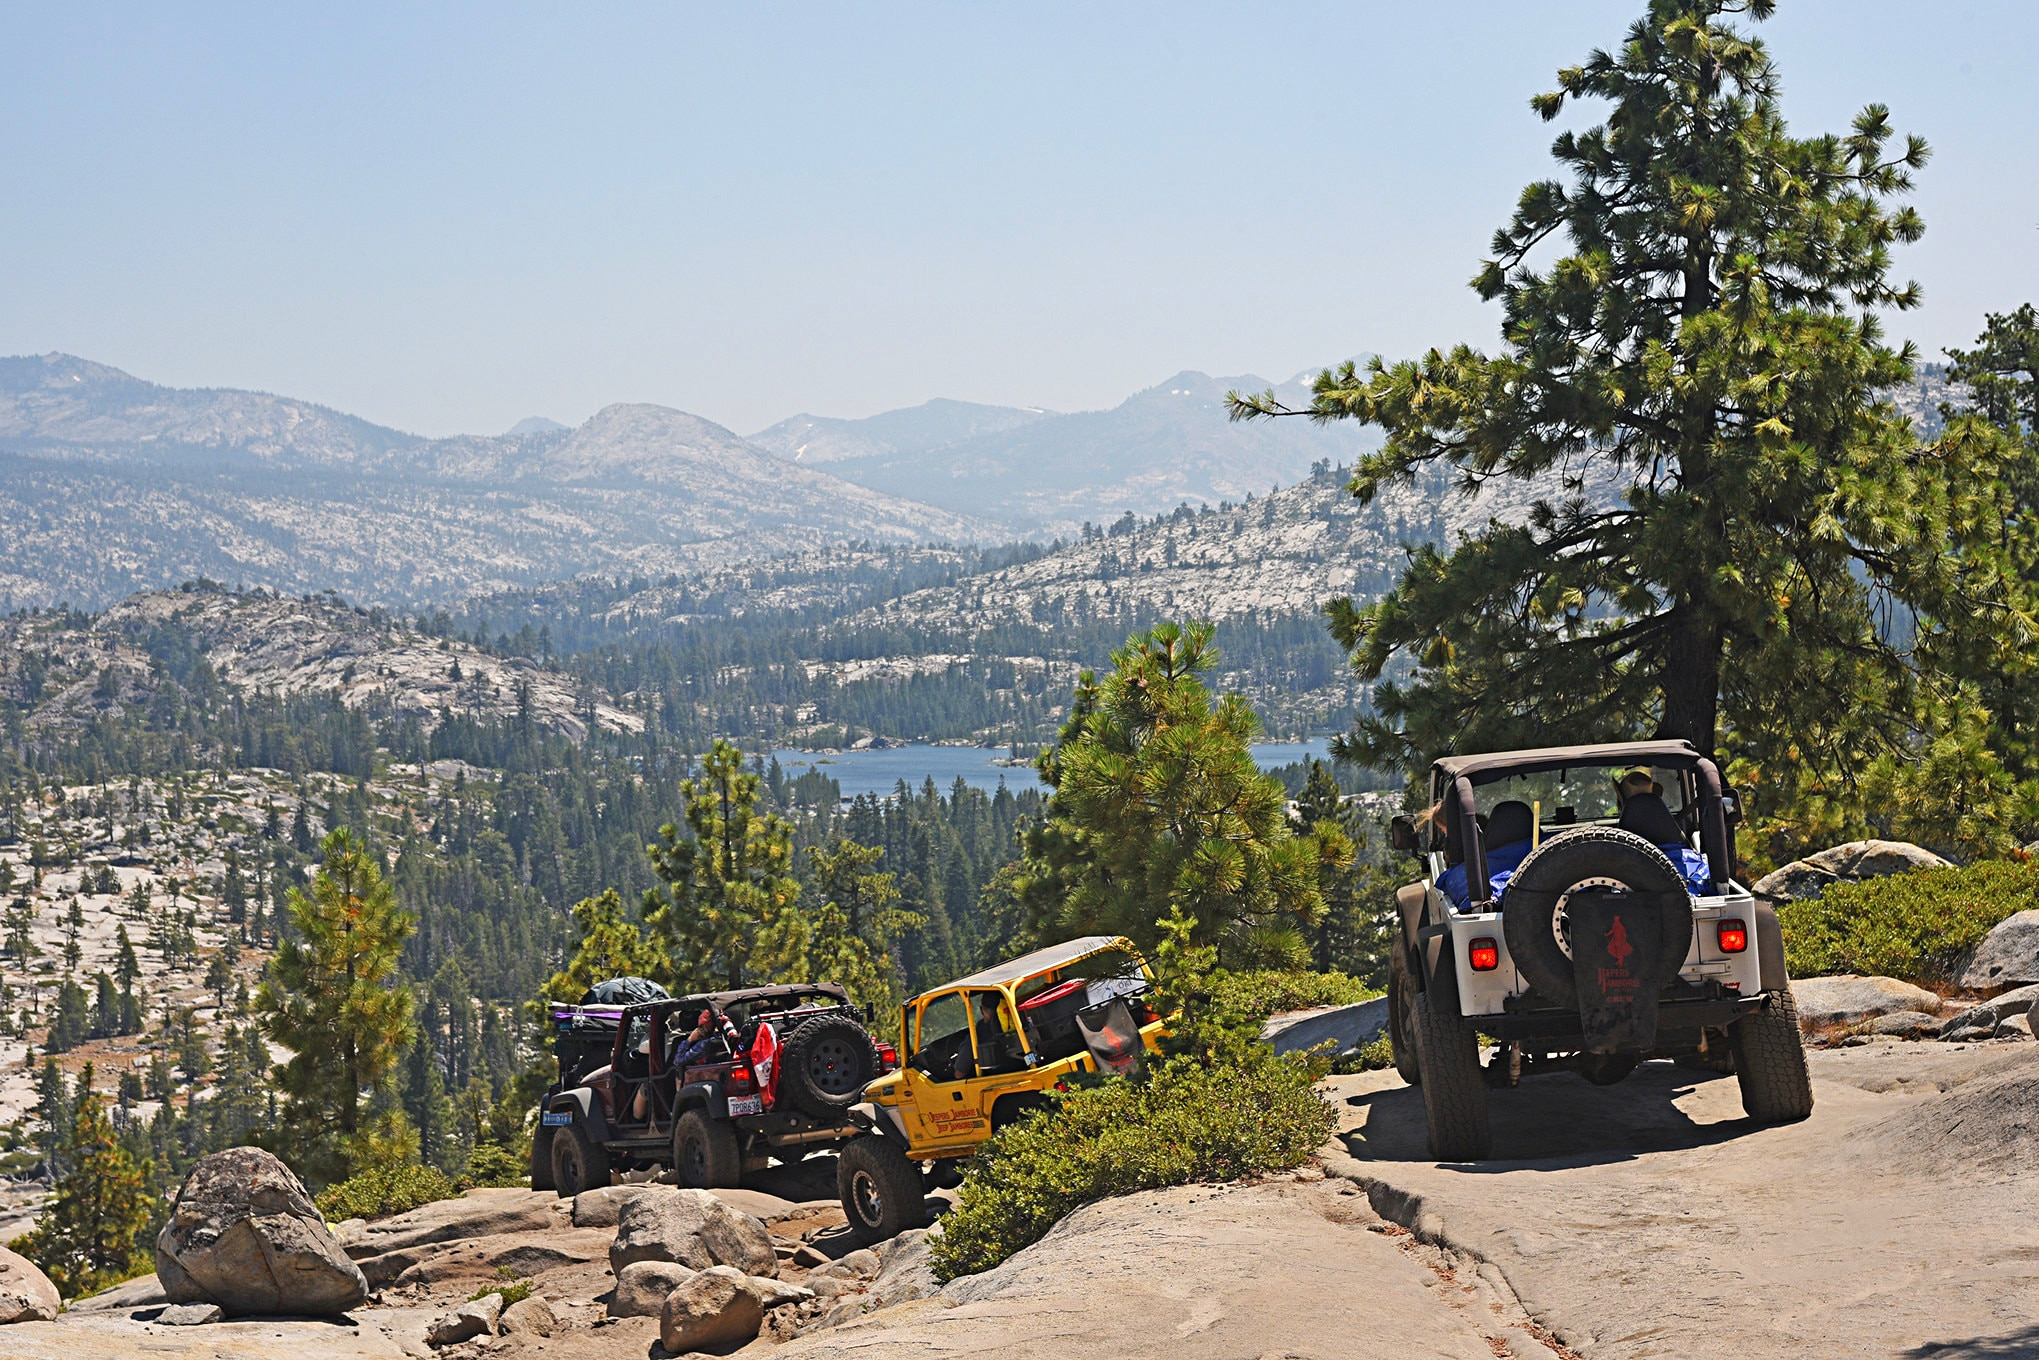 UPDATE: OHV Victory in California – Governor Signs Bill into Law